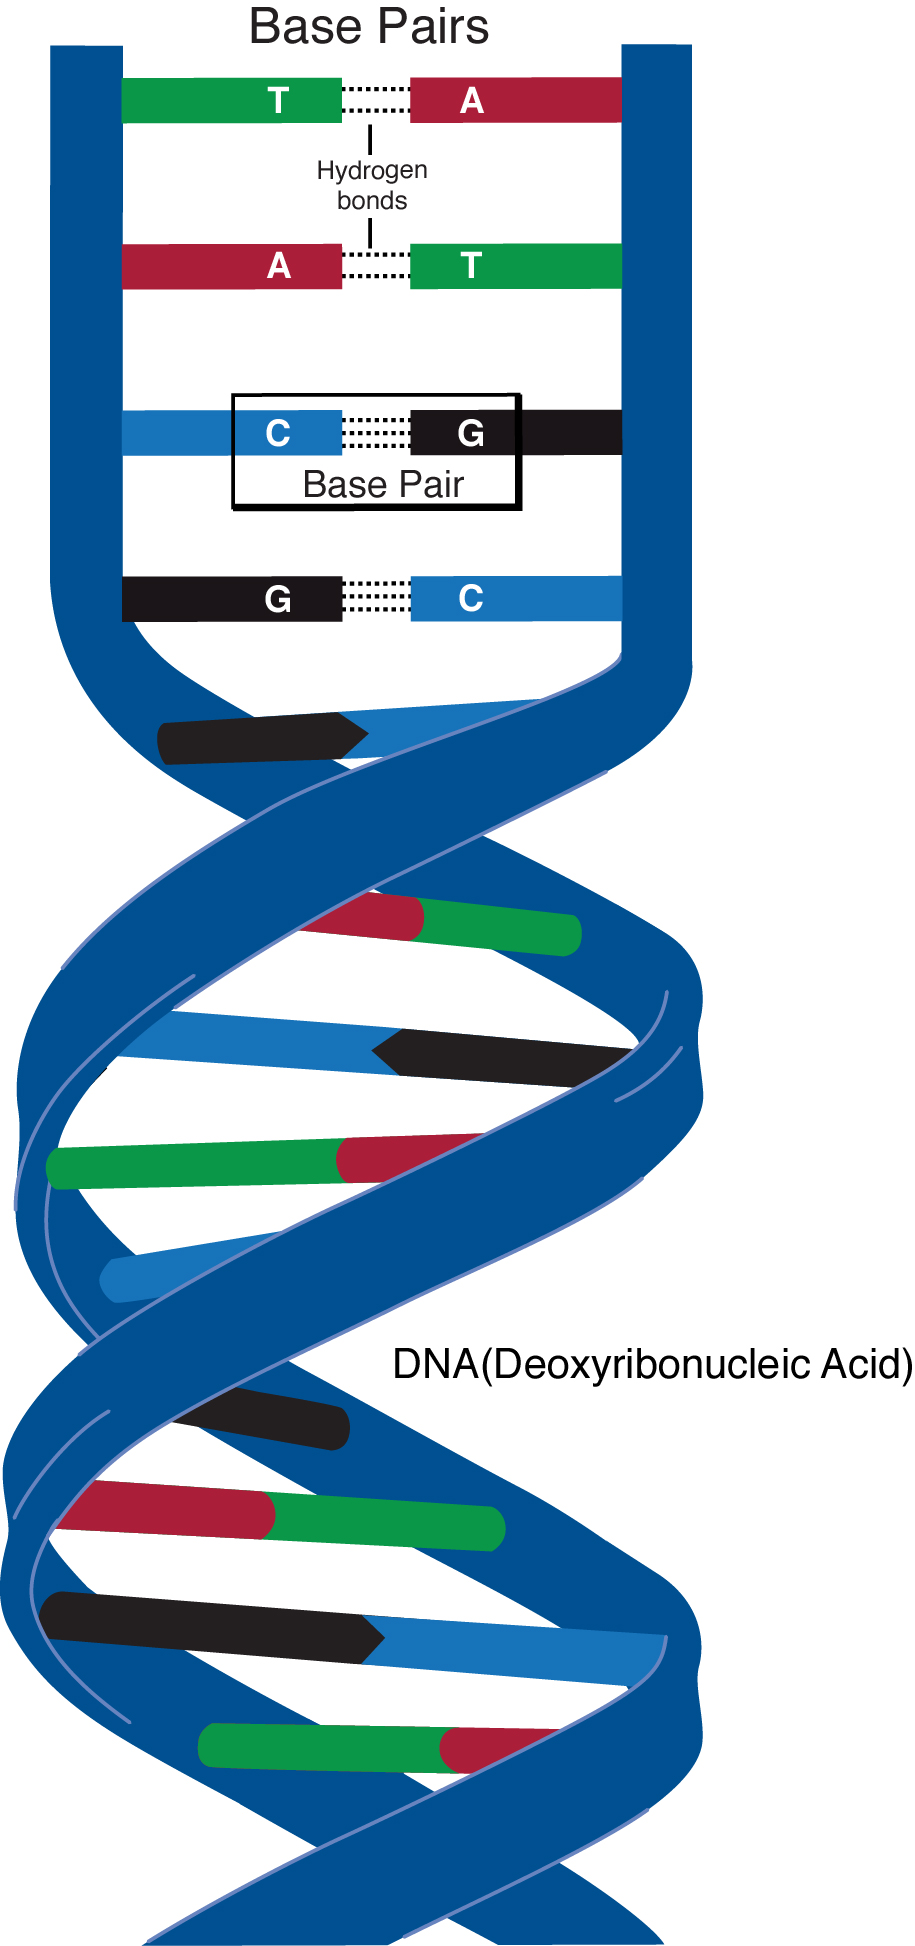 Dna brilliant math science wiki deoxyribonucleic acid dna is the biomolecule that contains the genetic information in all organisms in other words dna is an organisms blueprint dna malvernweather Images